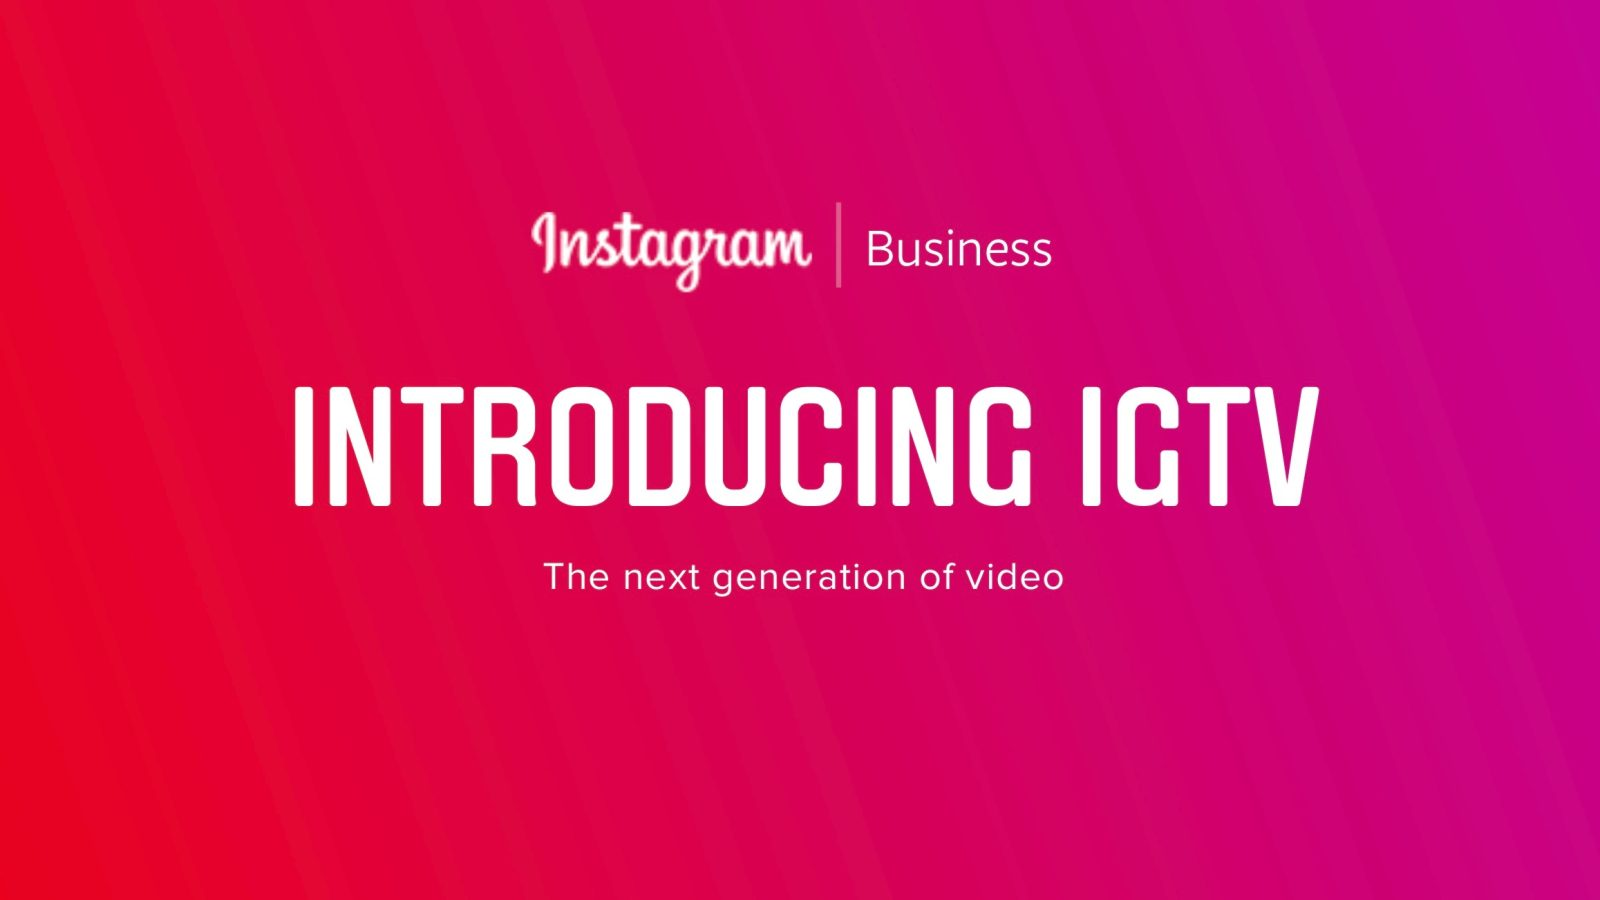 All About Instagram's Newest Feature: IGTV